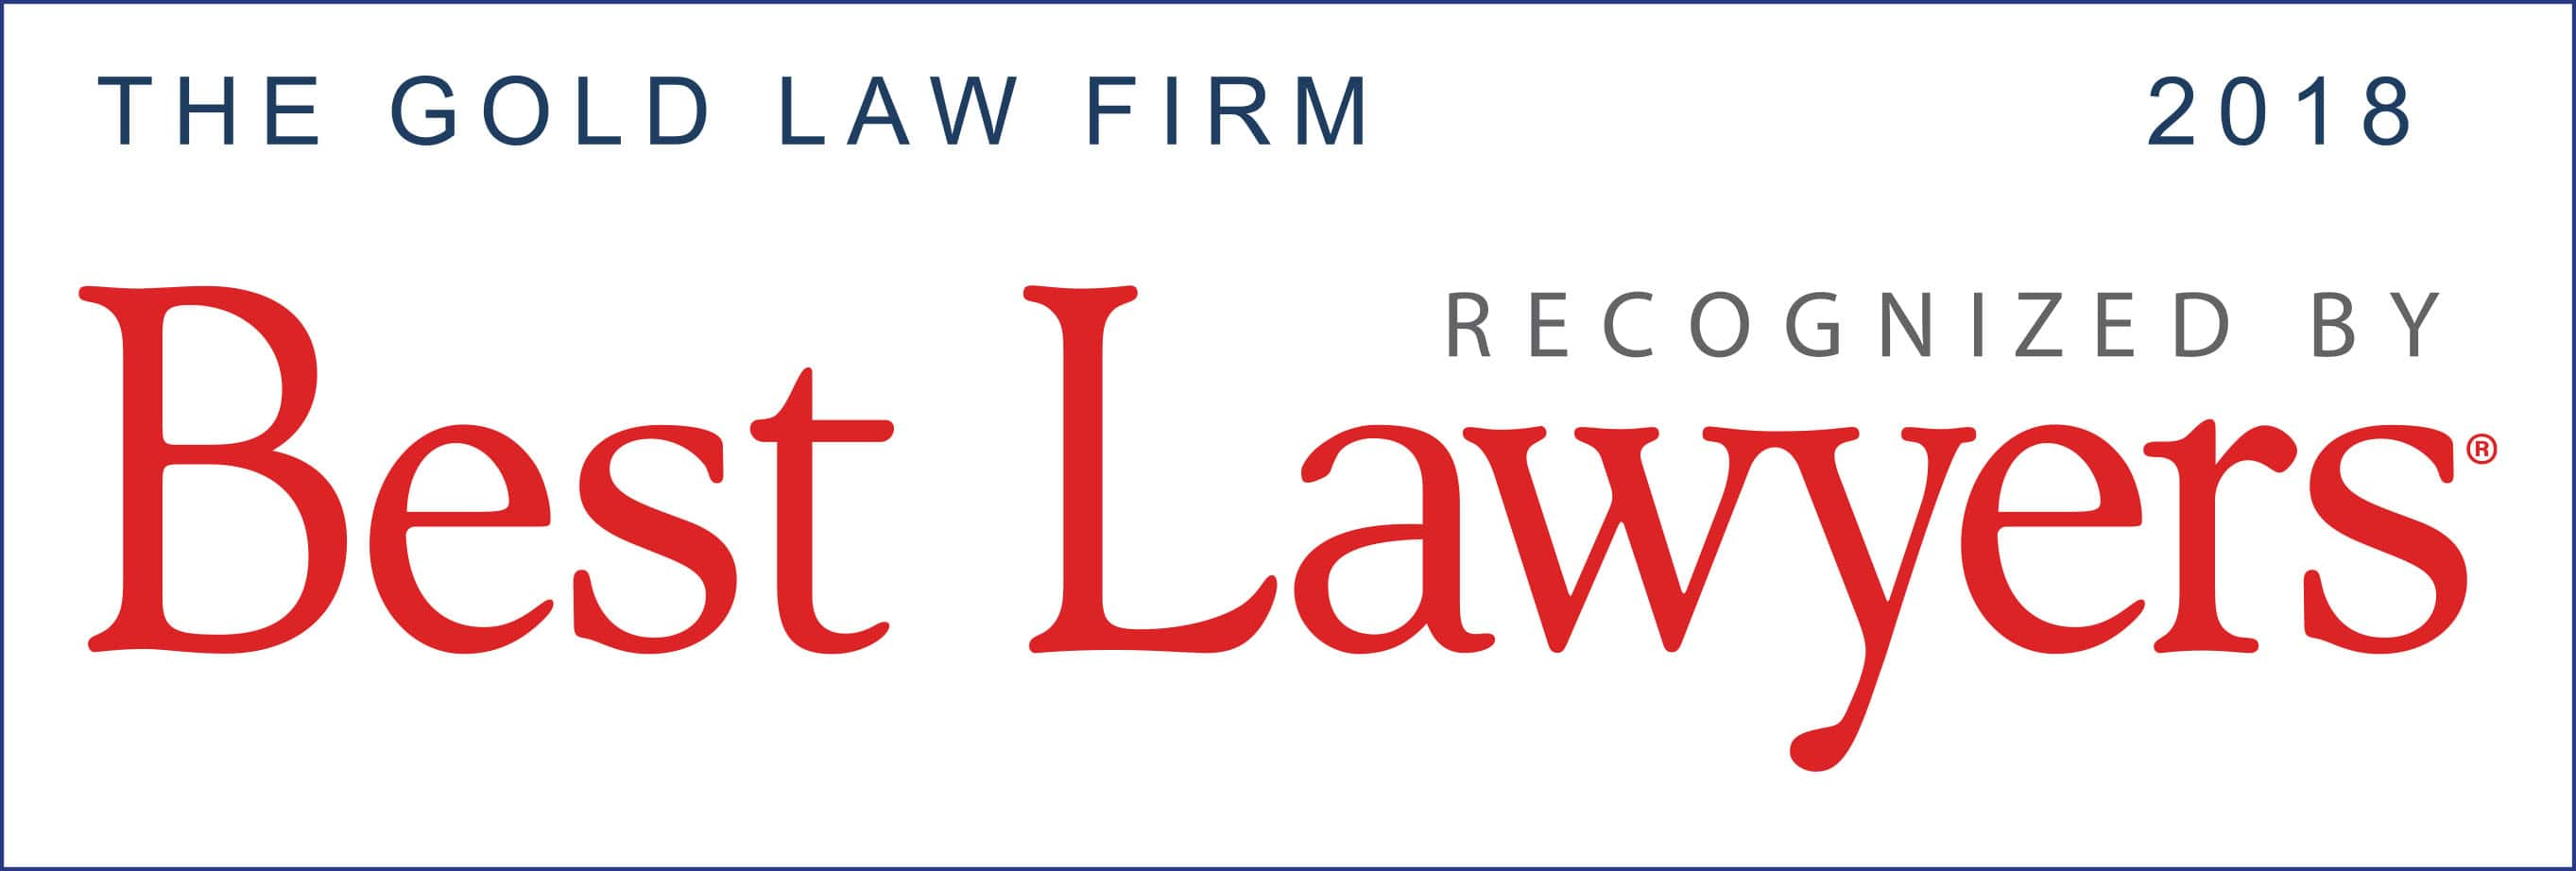 The Gold Law Firm Best Lawyers 2018